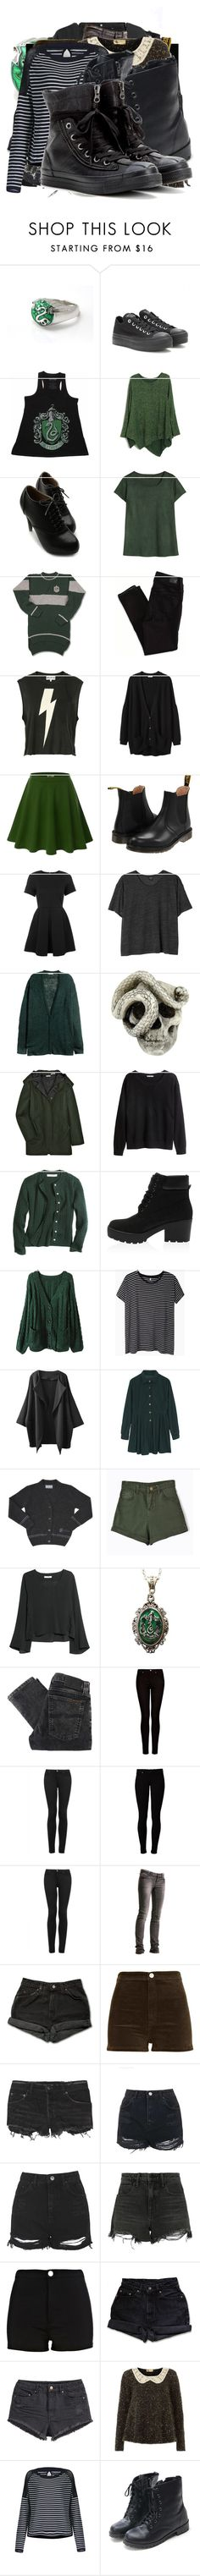 """""""Rose Potter"""" by grandmasfood ❤ liked on Polyvore featuring Converse, Ollio, American Eagle Outfitters, Wildfox, Organic by John Patrick, Doublju, Dr. Martens, Topshop, Monki and H&M"""